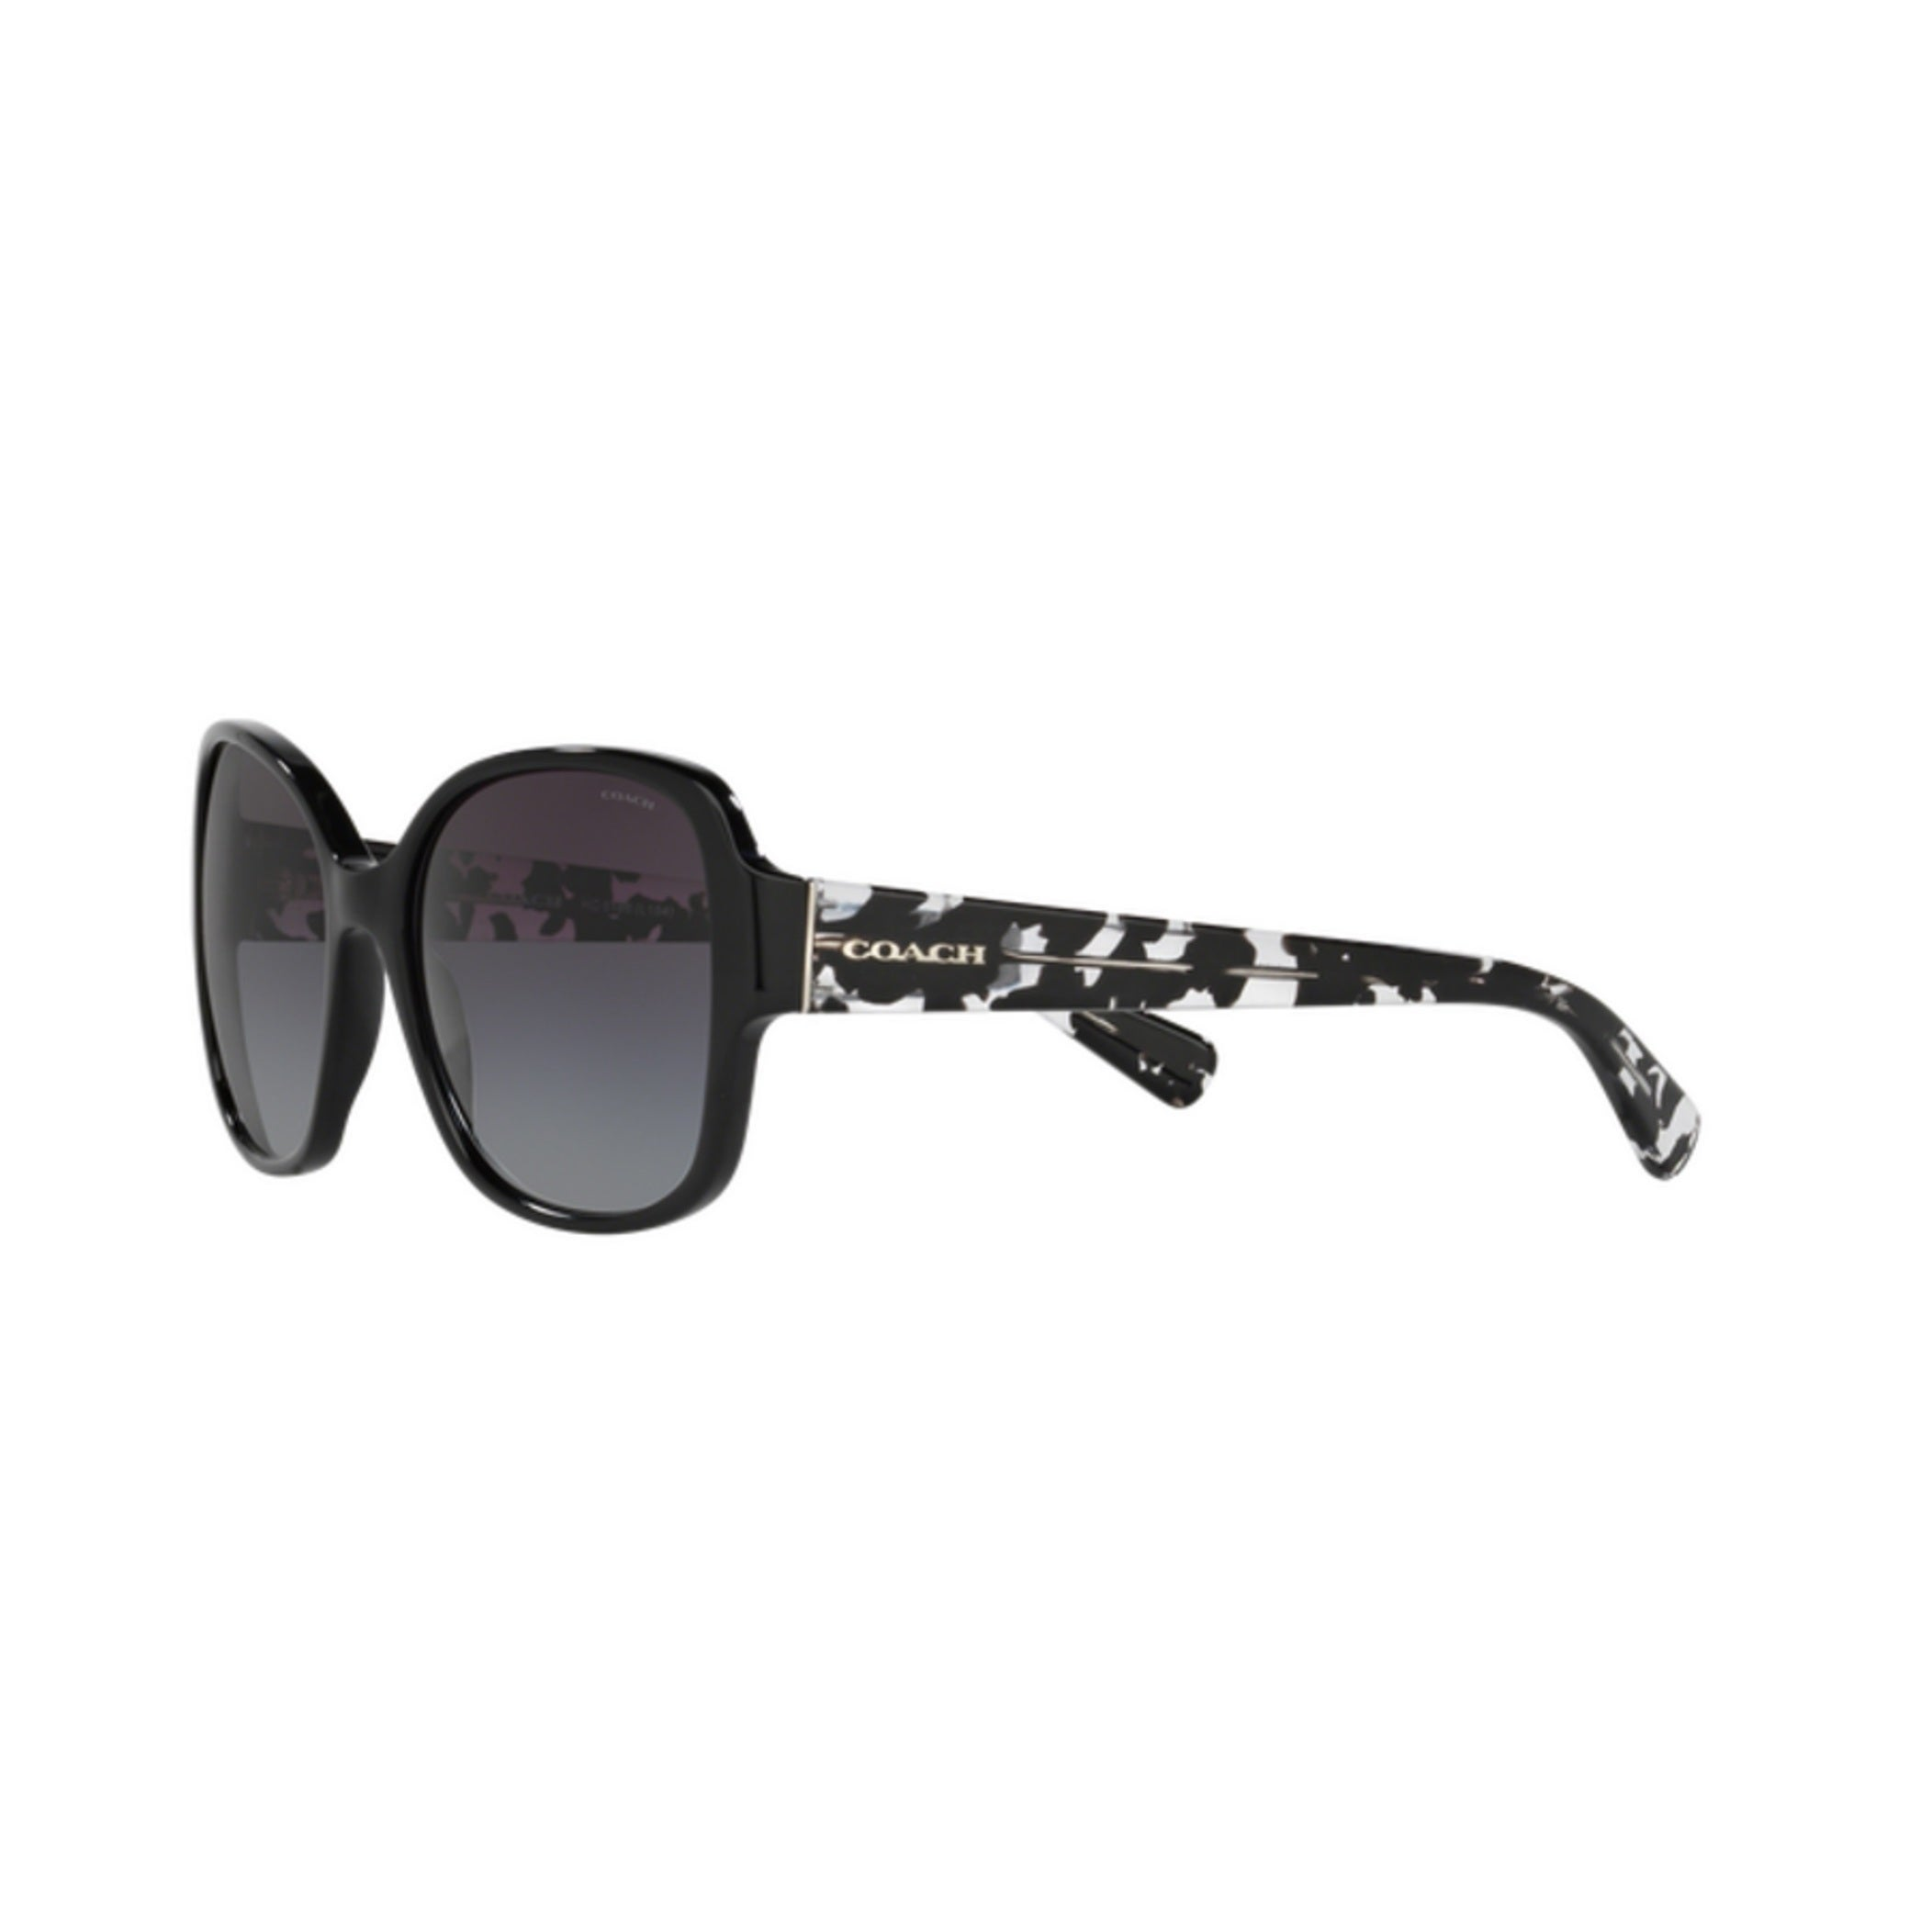 99f47c2c92 Shop Coach HC8166 L154 534811 Black Black Crystal Mosaic Womens Plastic  Butterfly Sunglasses - Ships To Canada - Overstock - 12647087